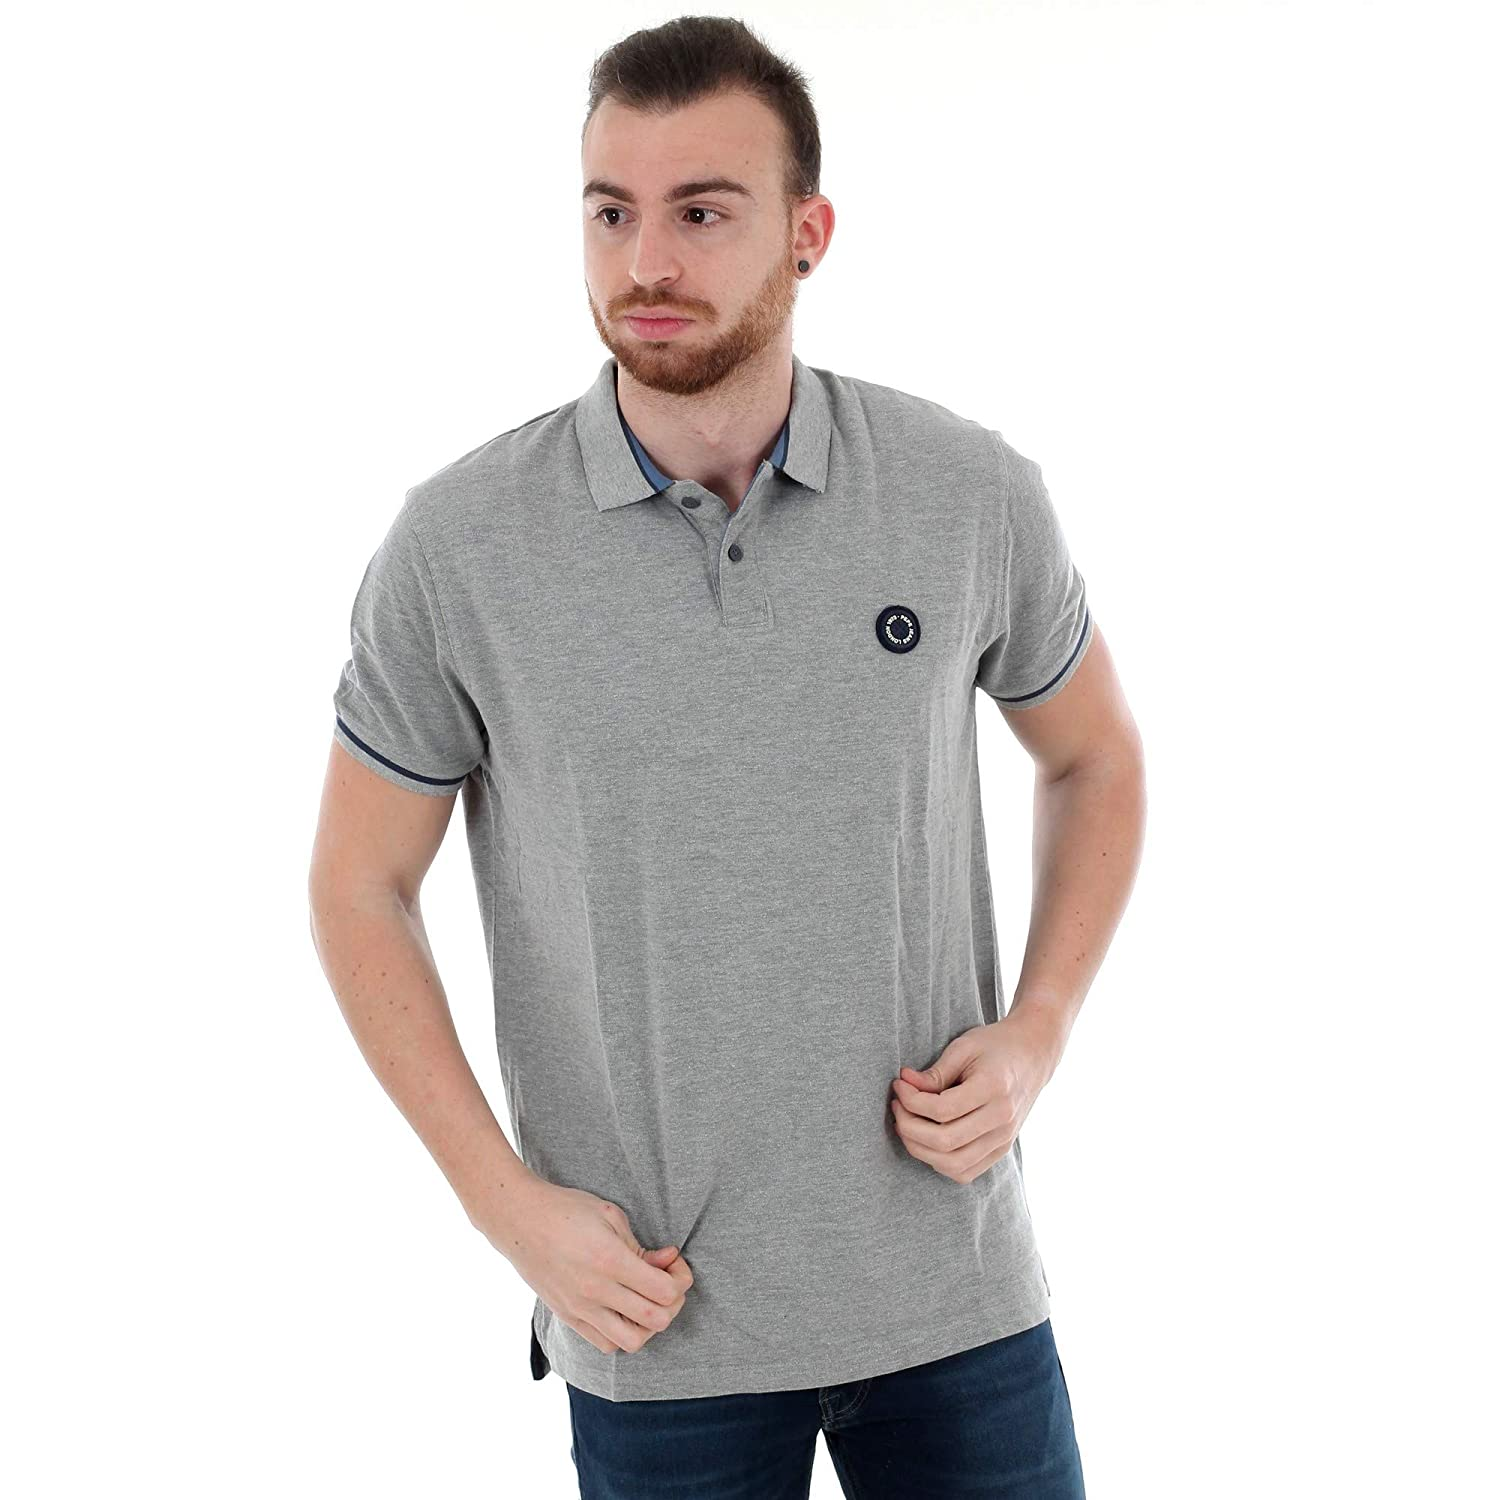 Pepe Jeans Polo Hombre Gris Claro PM541304 Terence - 933 Grey Marl ...